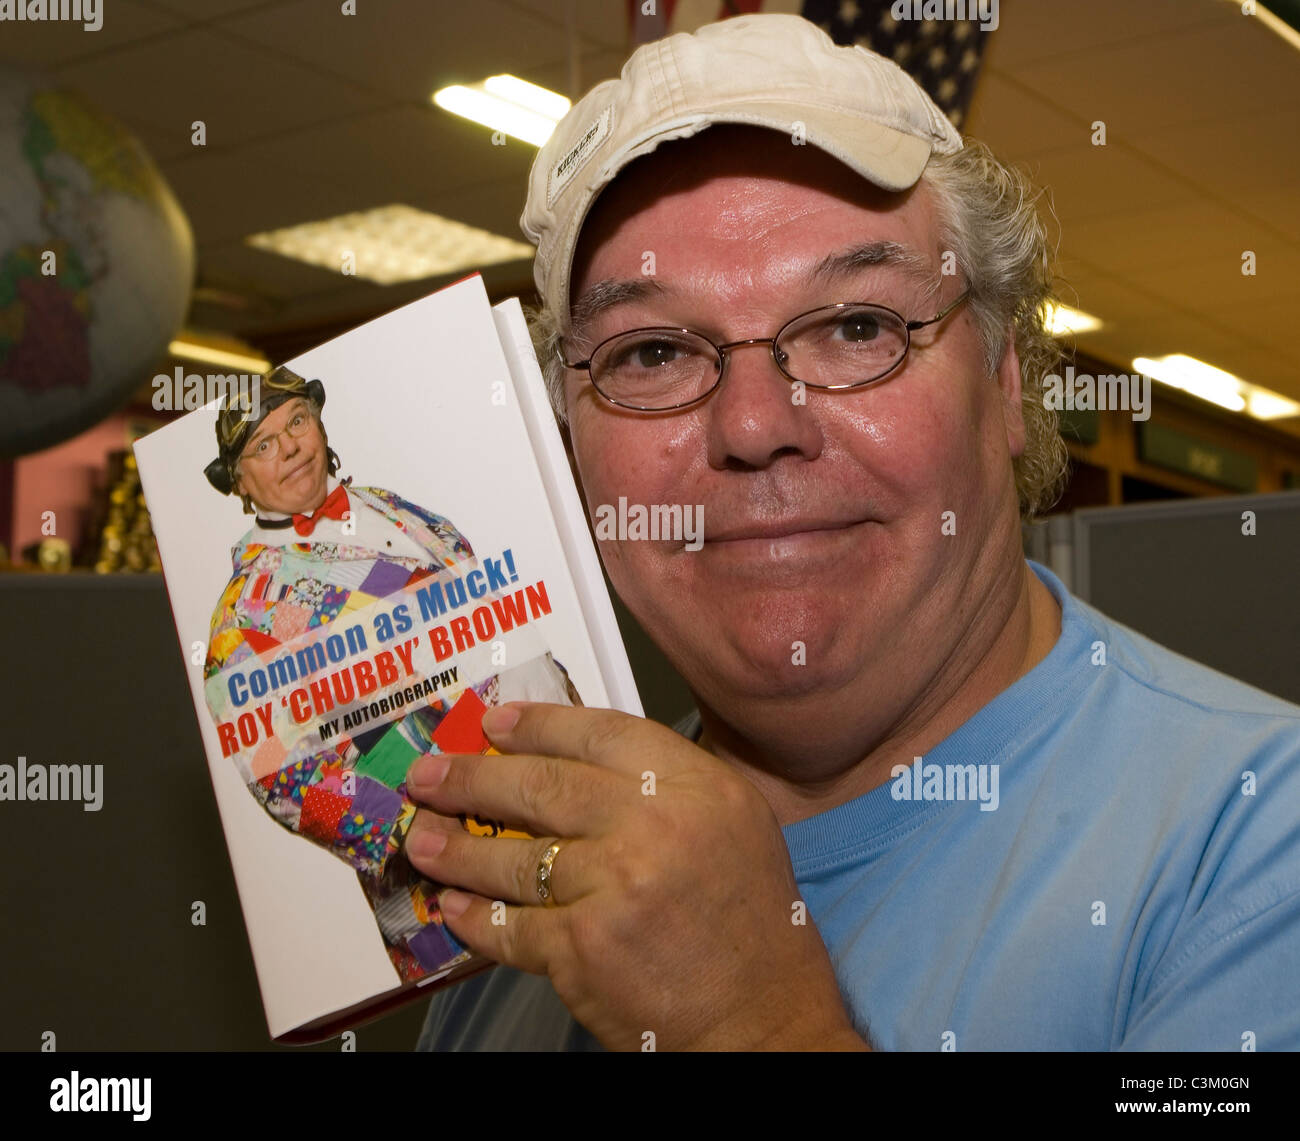 Roy chubby brown lincoln for